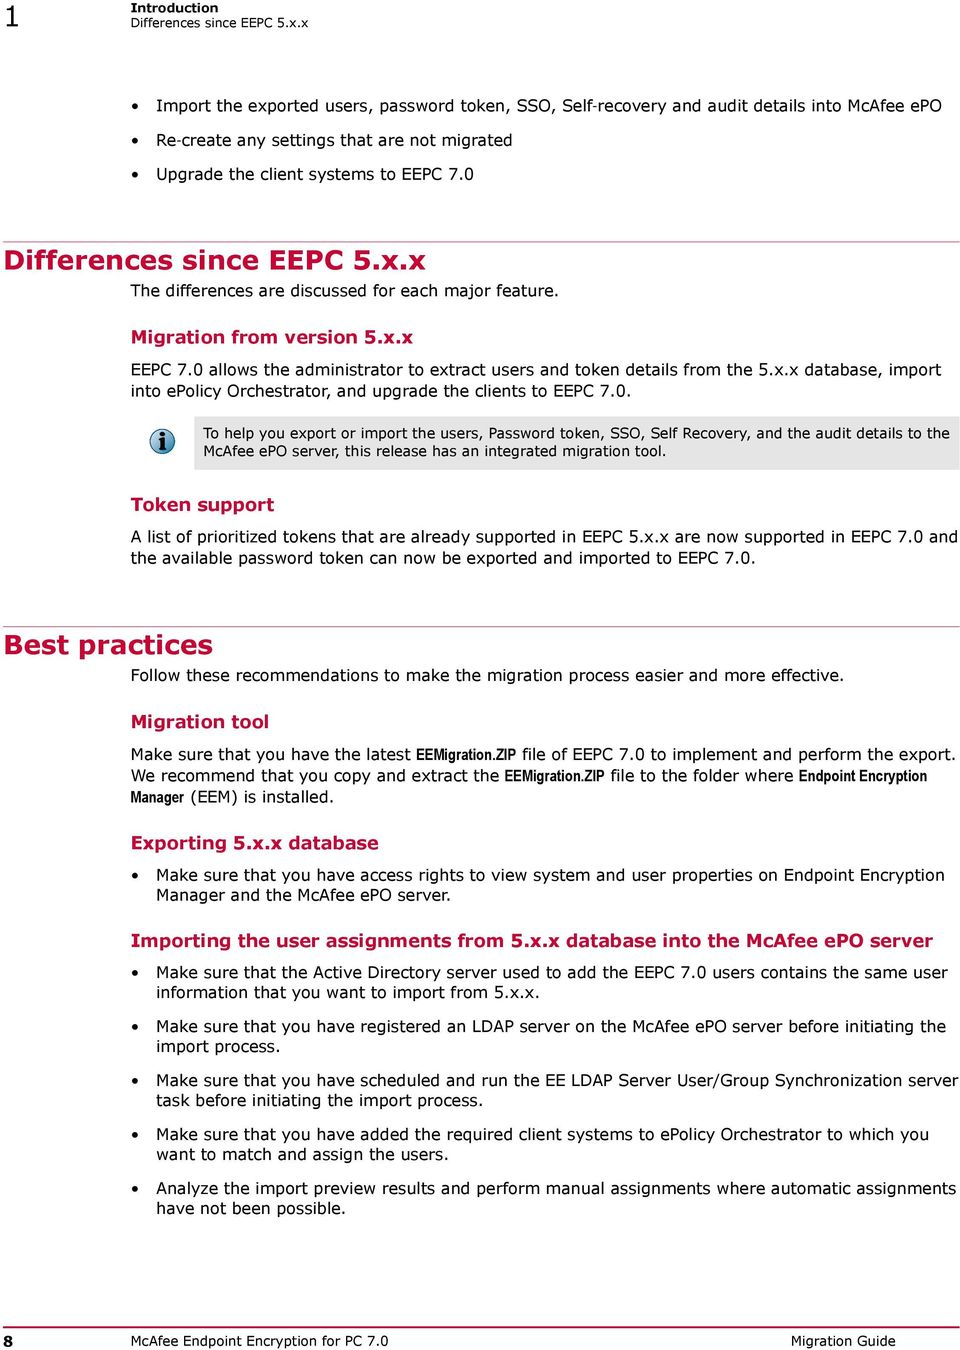 0 Differences since EEPC 5.x.x The differences are discussed for each major feature. Migration from version 5.x.x EEPC 7.0 allows the administrator to extract users and token details from the 5.x.x database, import into epolicy Orchestrator, and upgrade the clients to EEPC 7.